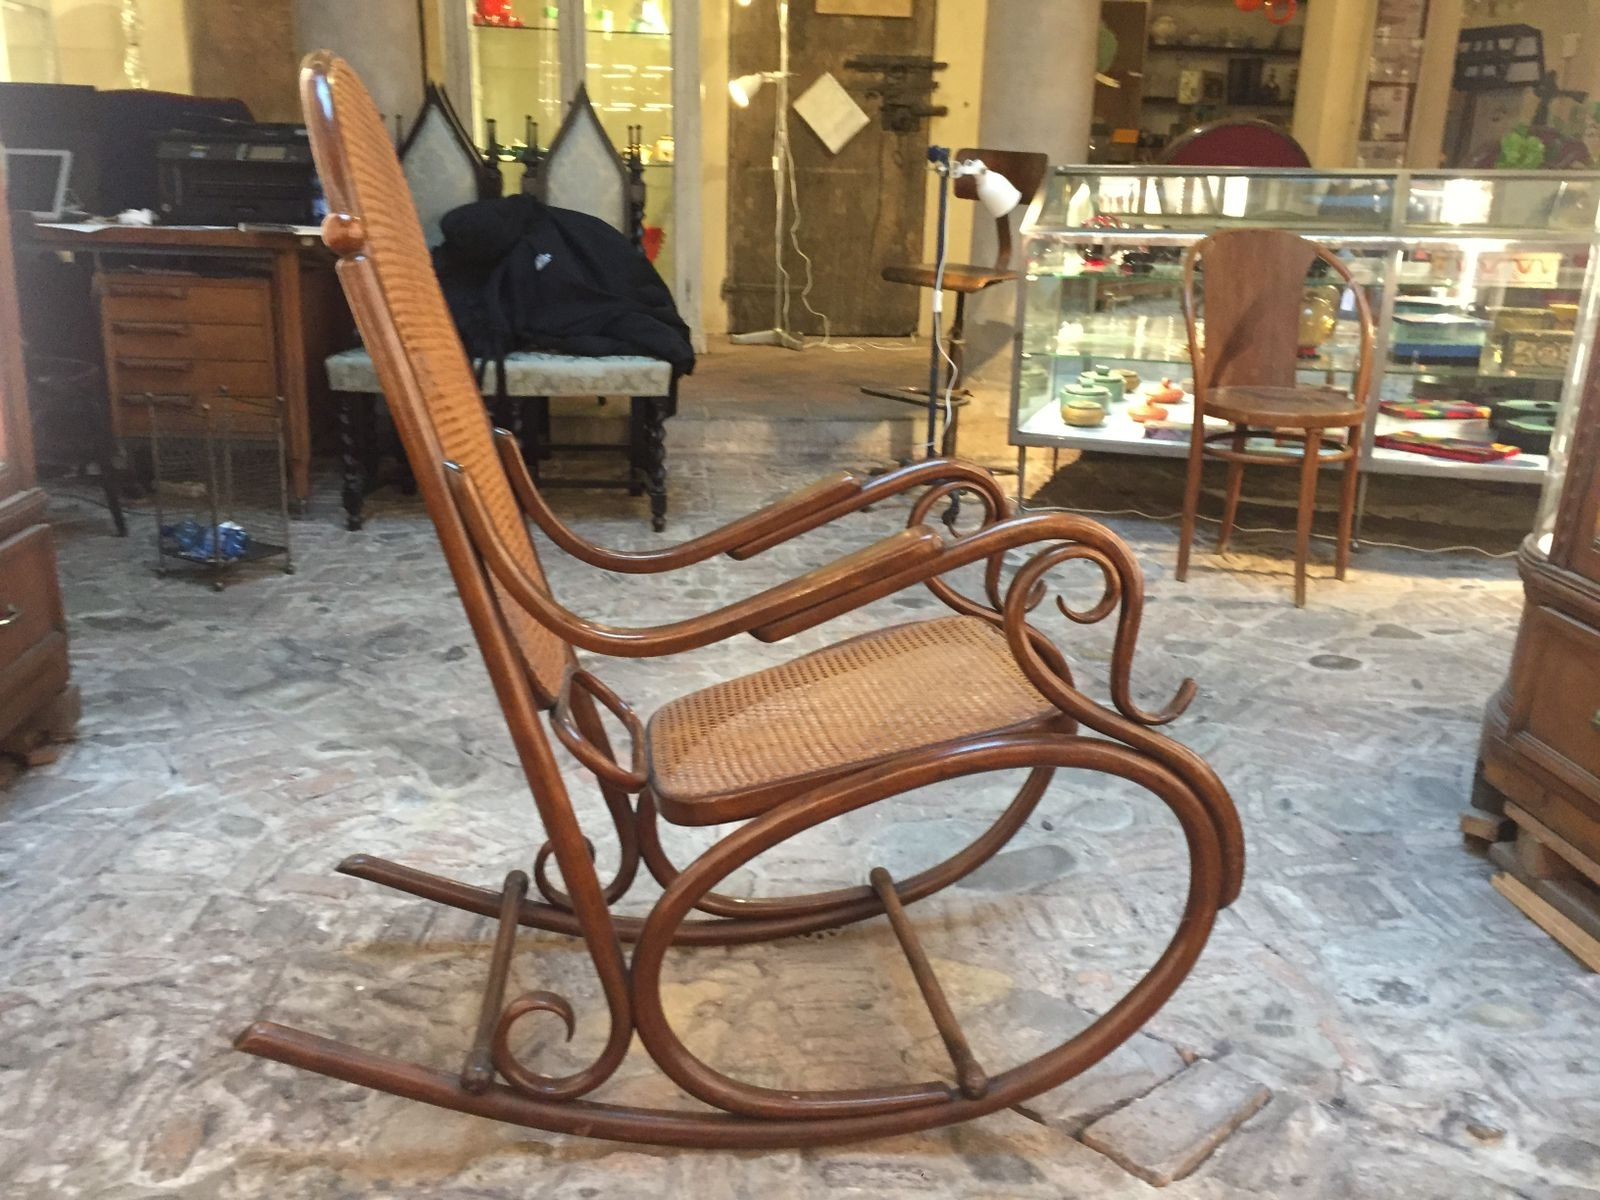 Antique Rocking Chair From Thonet For Sale At Pamono Regarding Most Recent Antique Rocking Chairs (View 2 of 15)